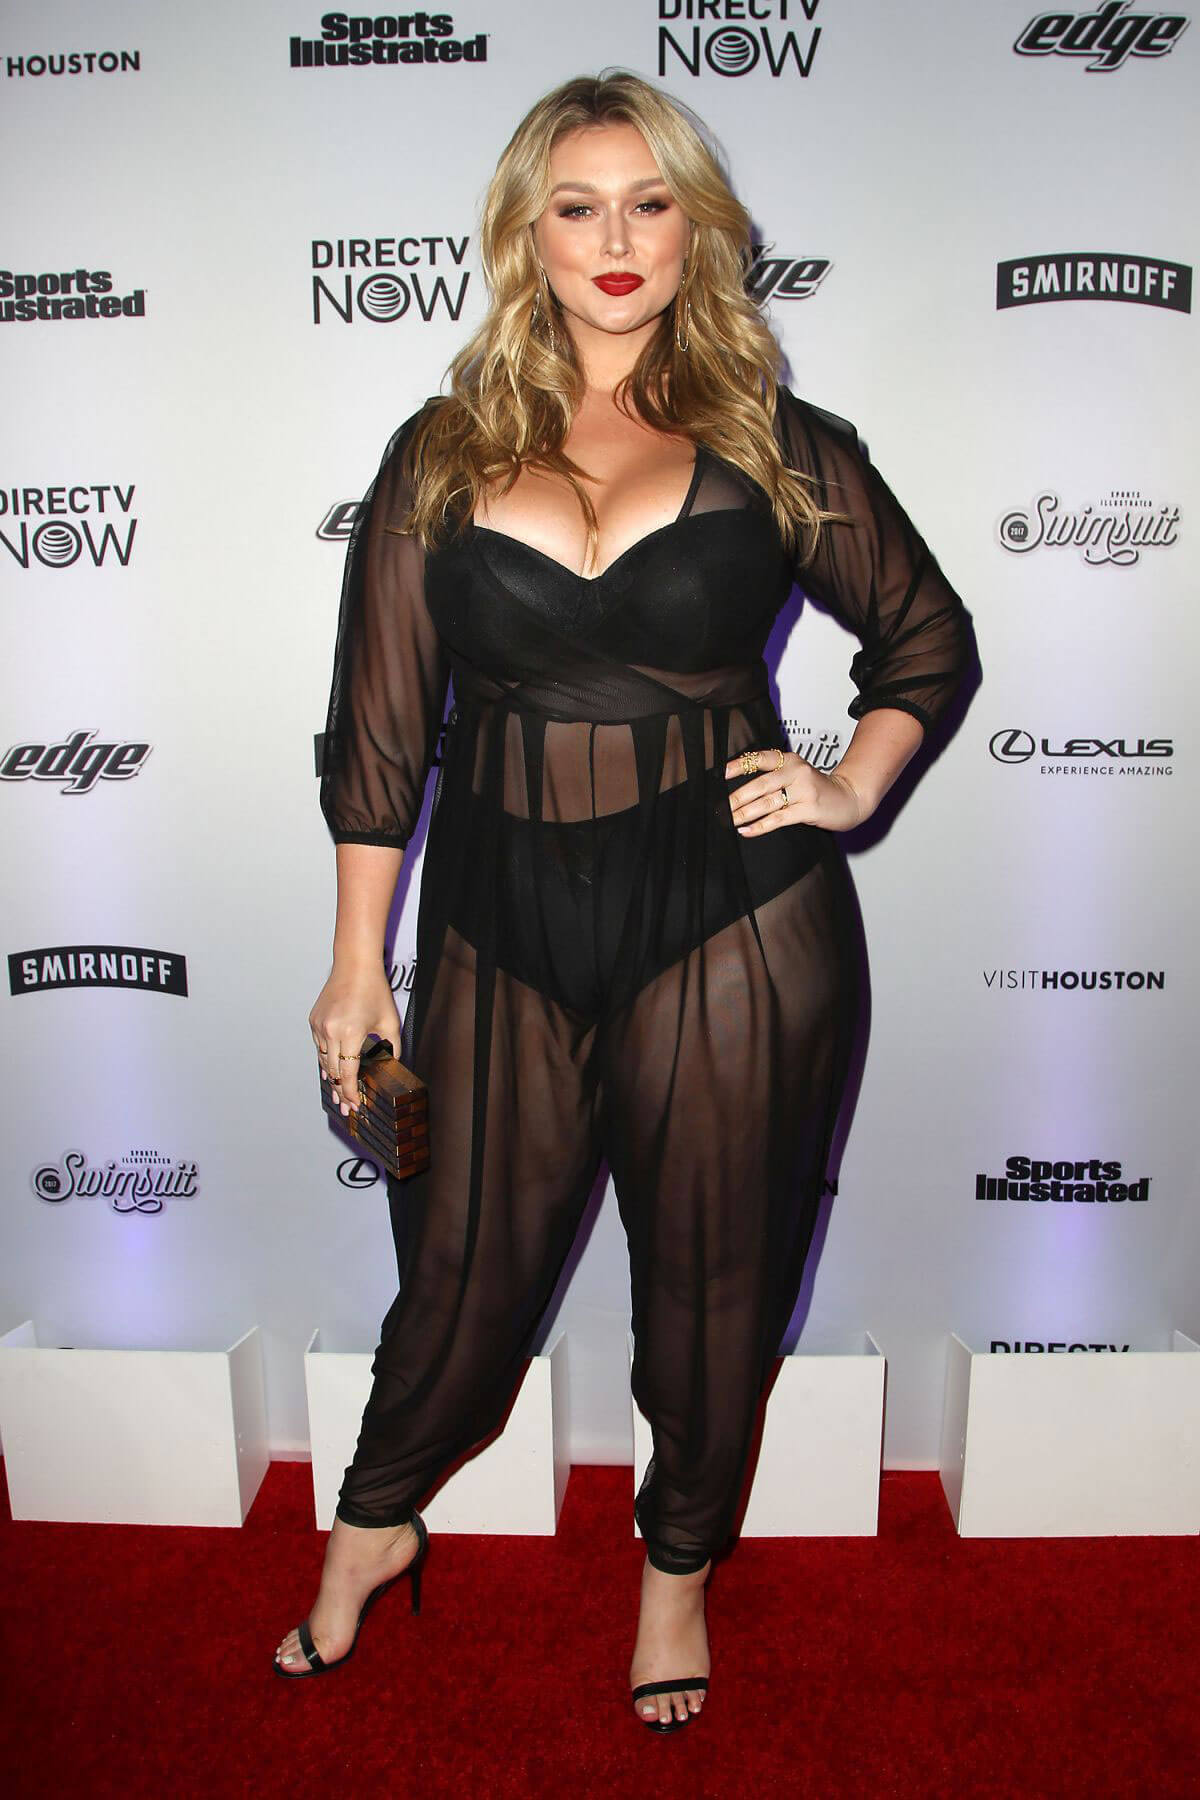 Hunter McGrady Stills at Sports Illustrated Swimsuit Edition Launch in New York